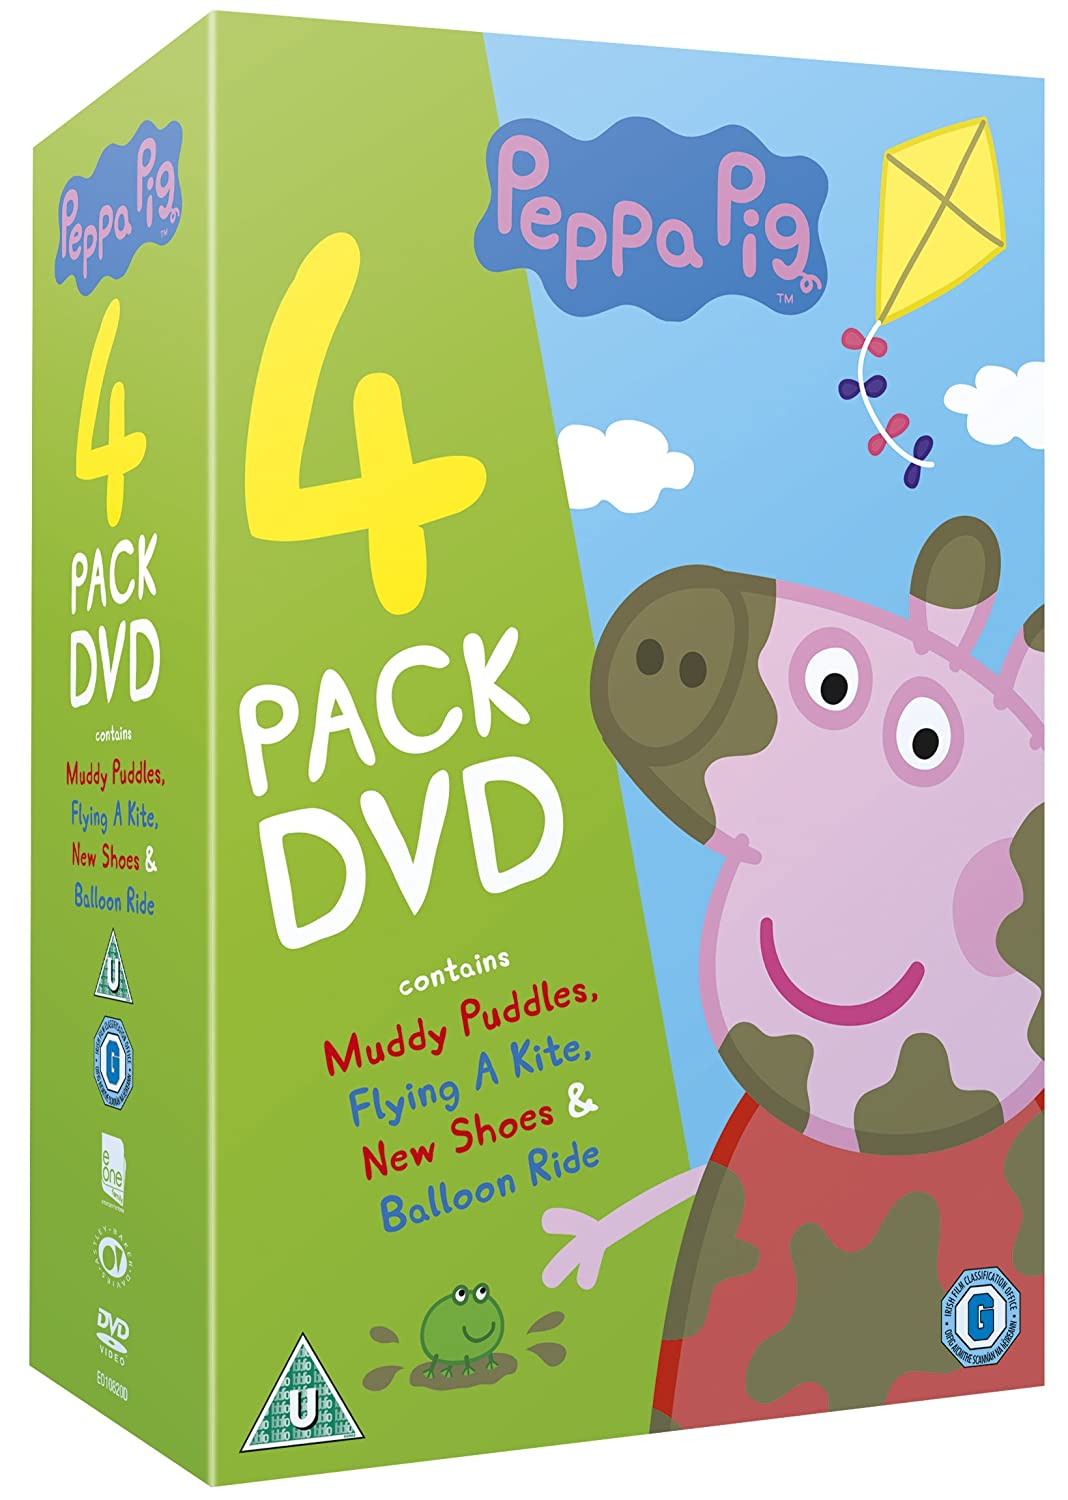 Peppa Pig: The Muddy Puddles Collection DVD Reino Unido: Amazon.es ...